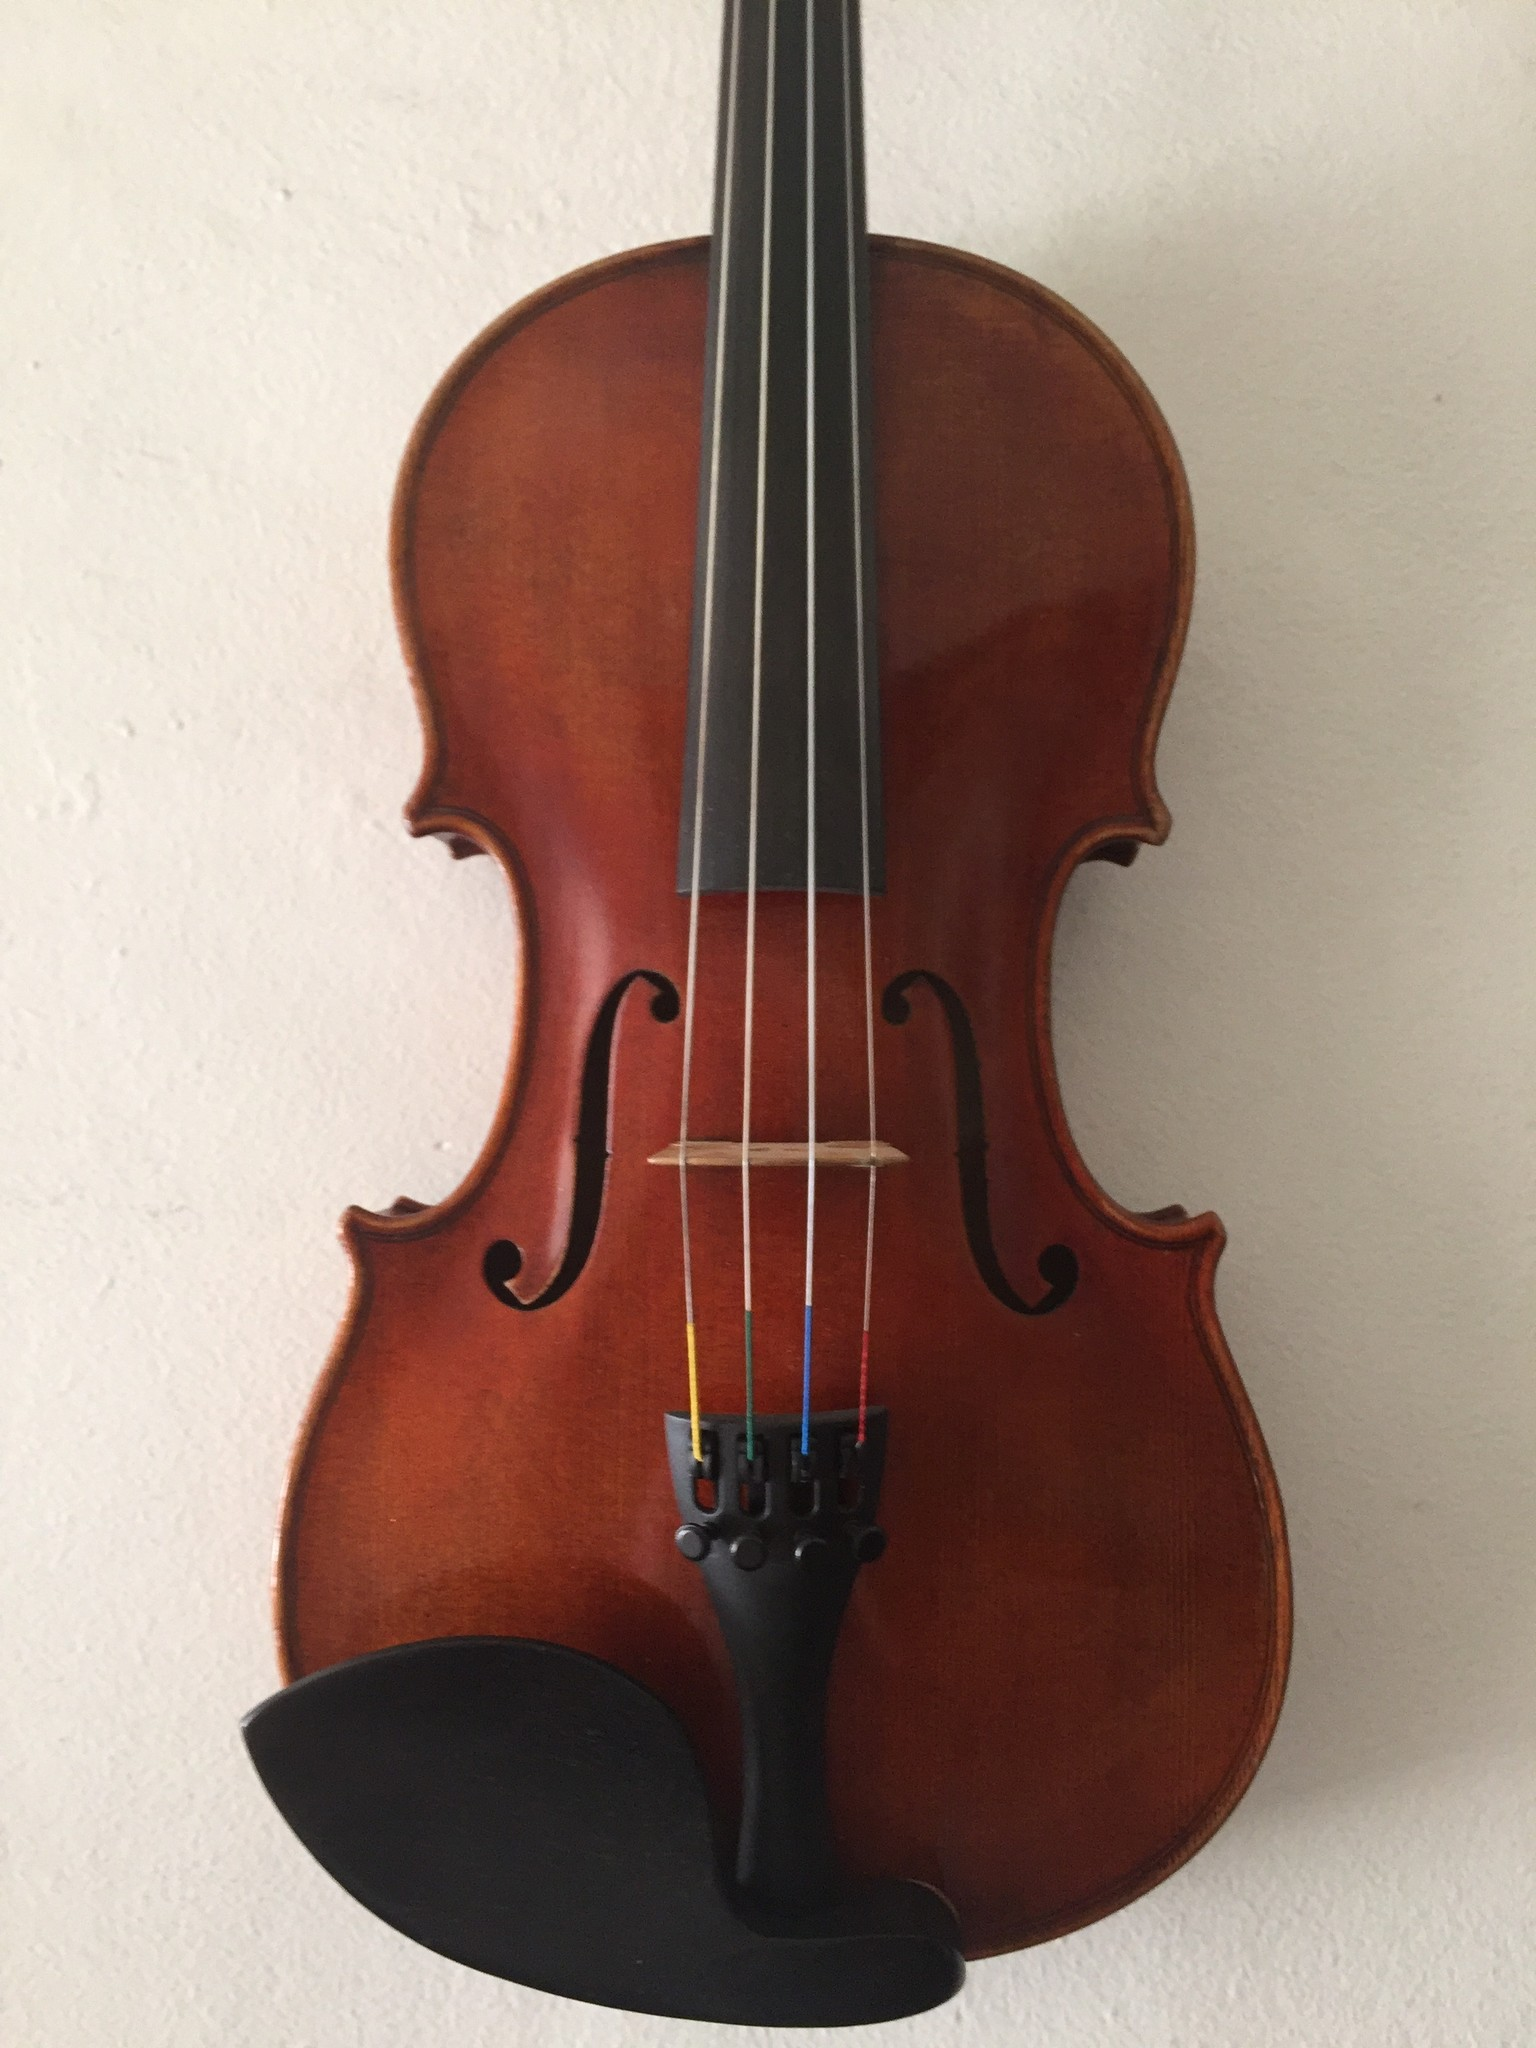 Theo Glaesel petite violin, 1955, Markneukirchen, GERMANY